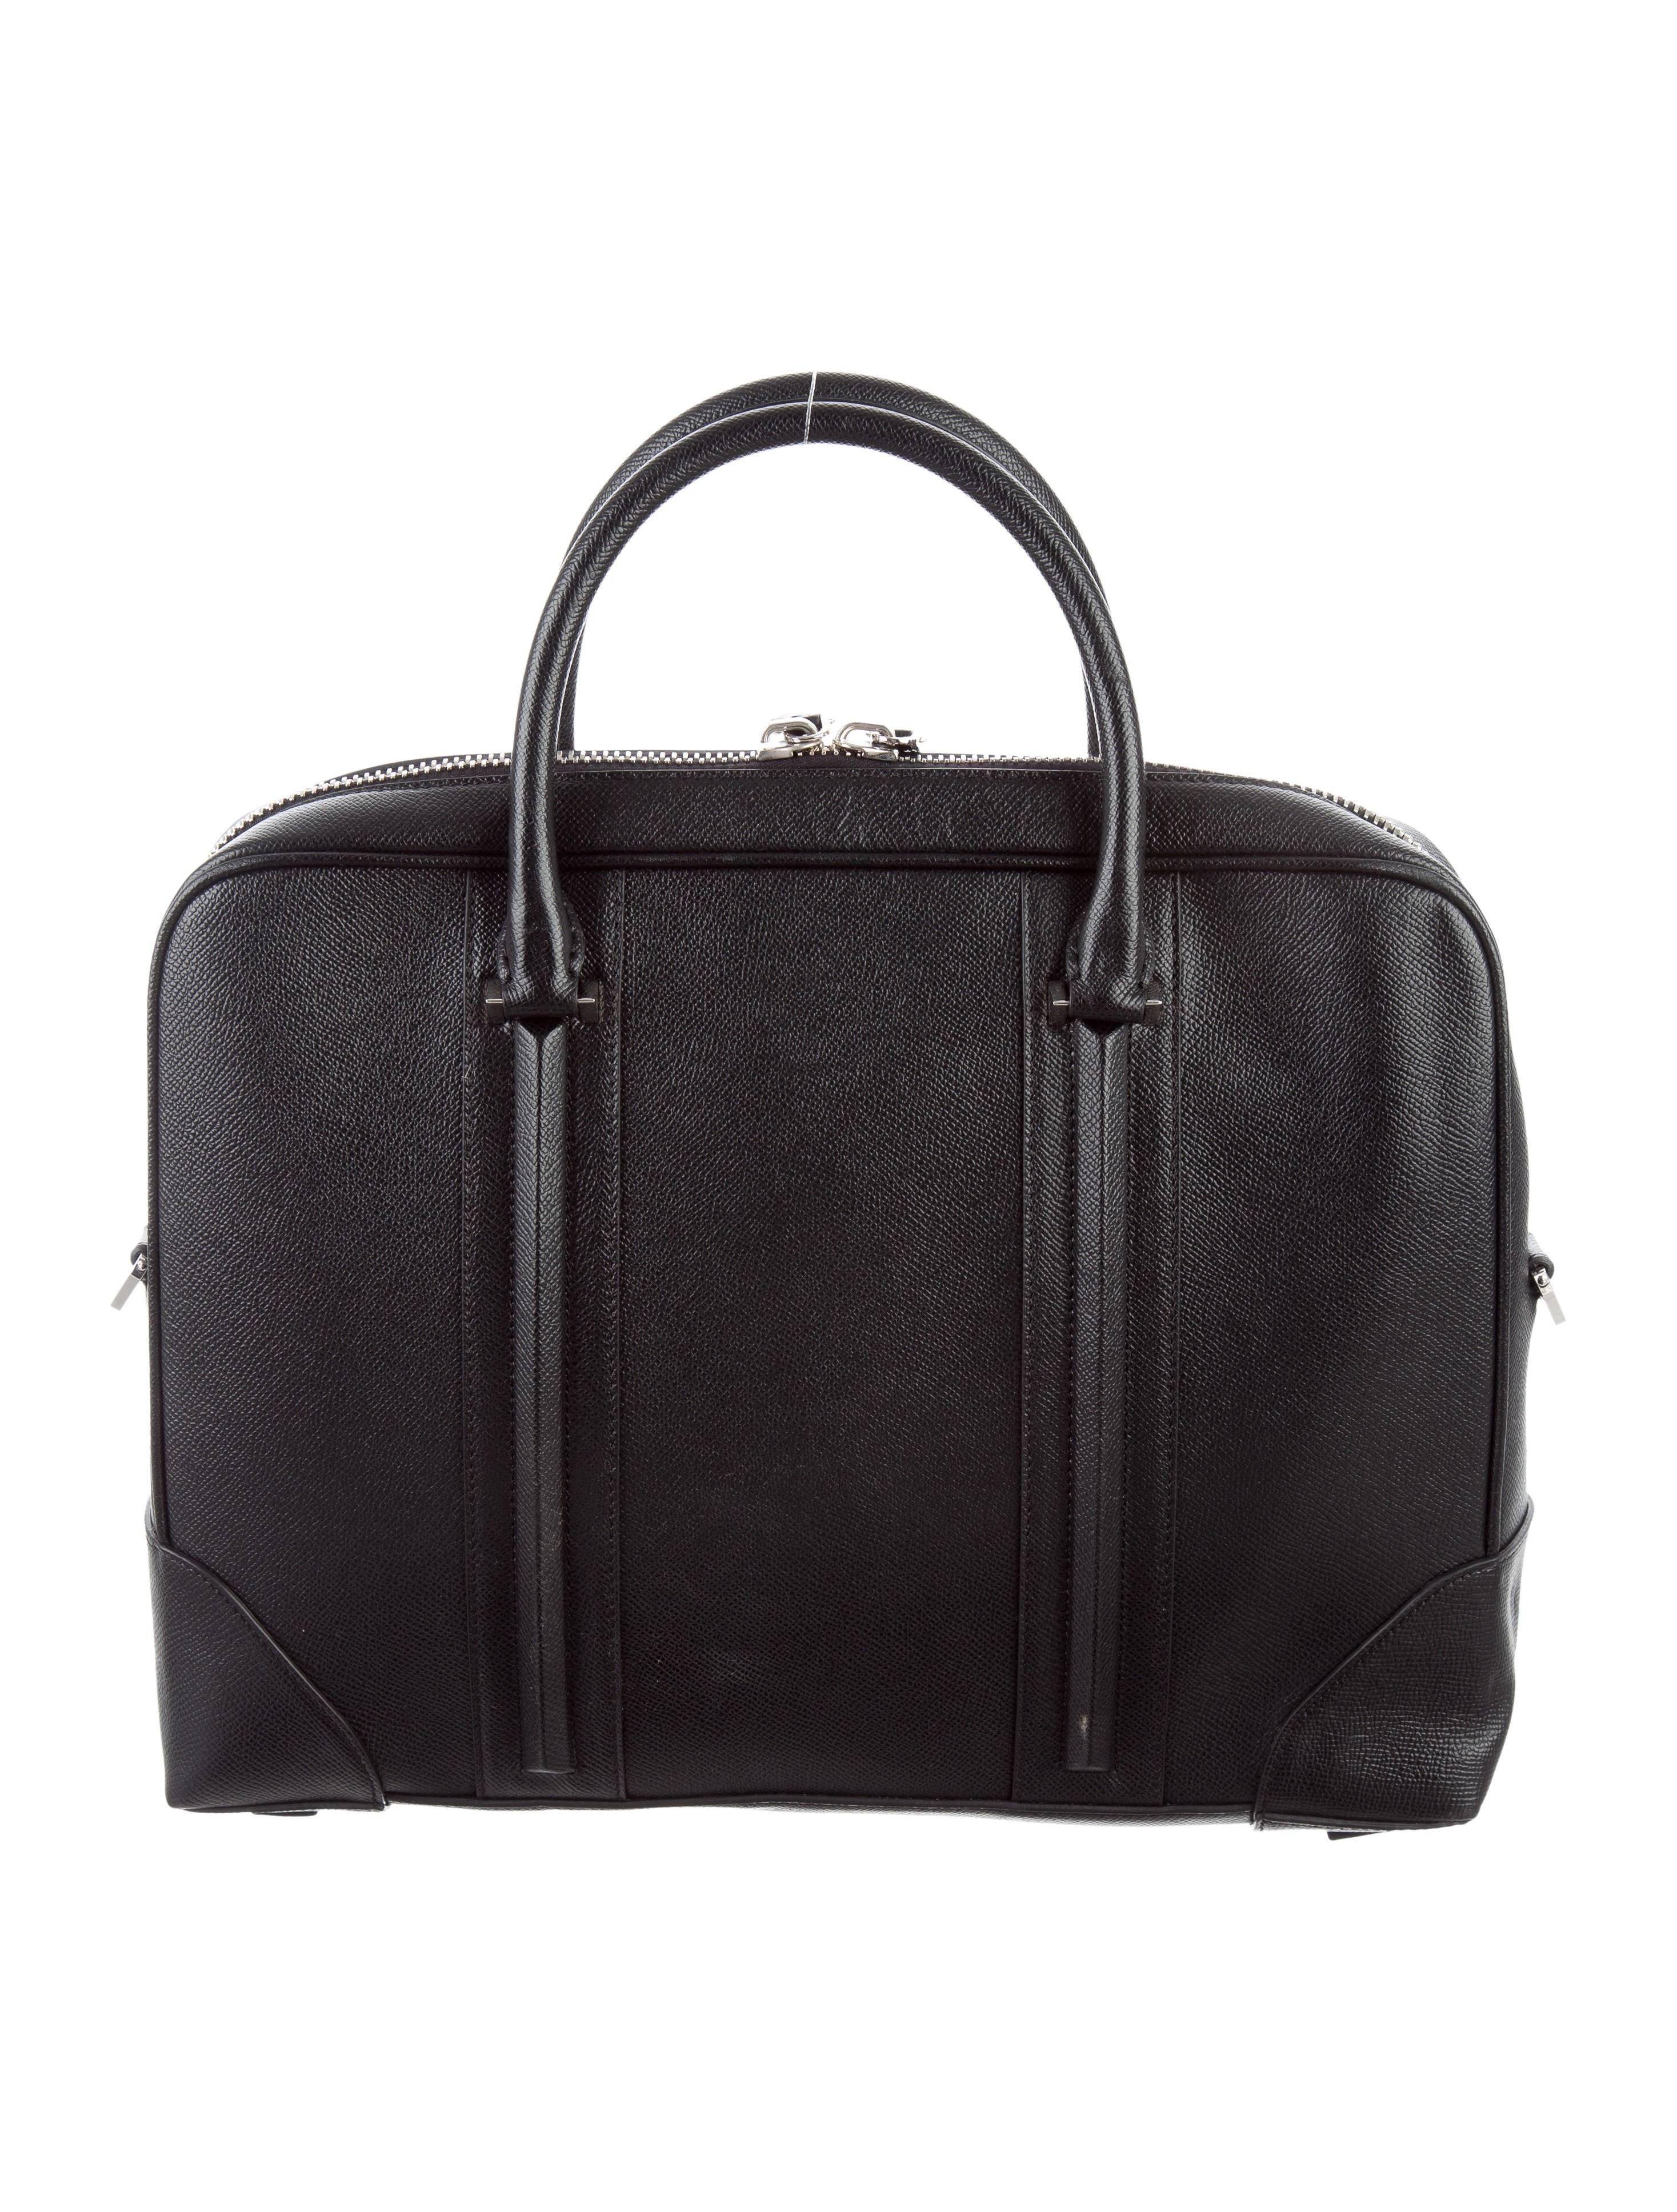 Givenchy New Black Leather Mens Business Travel Briefcase Tote Shoulder Bag mBlraT